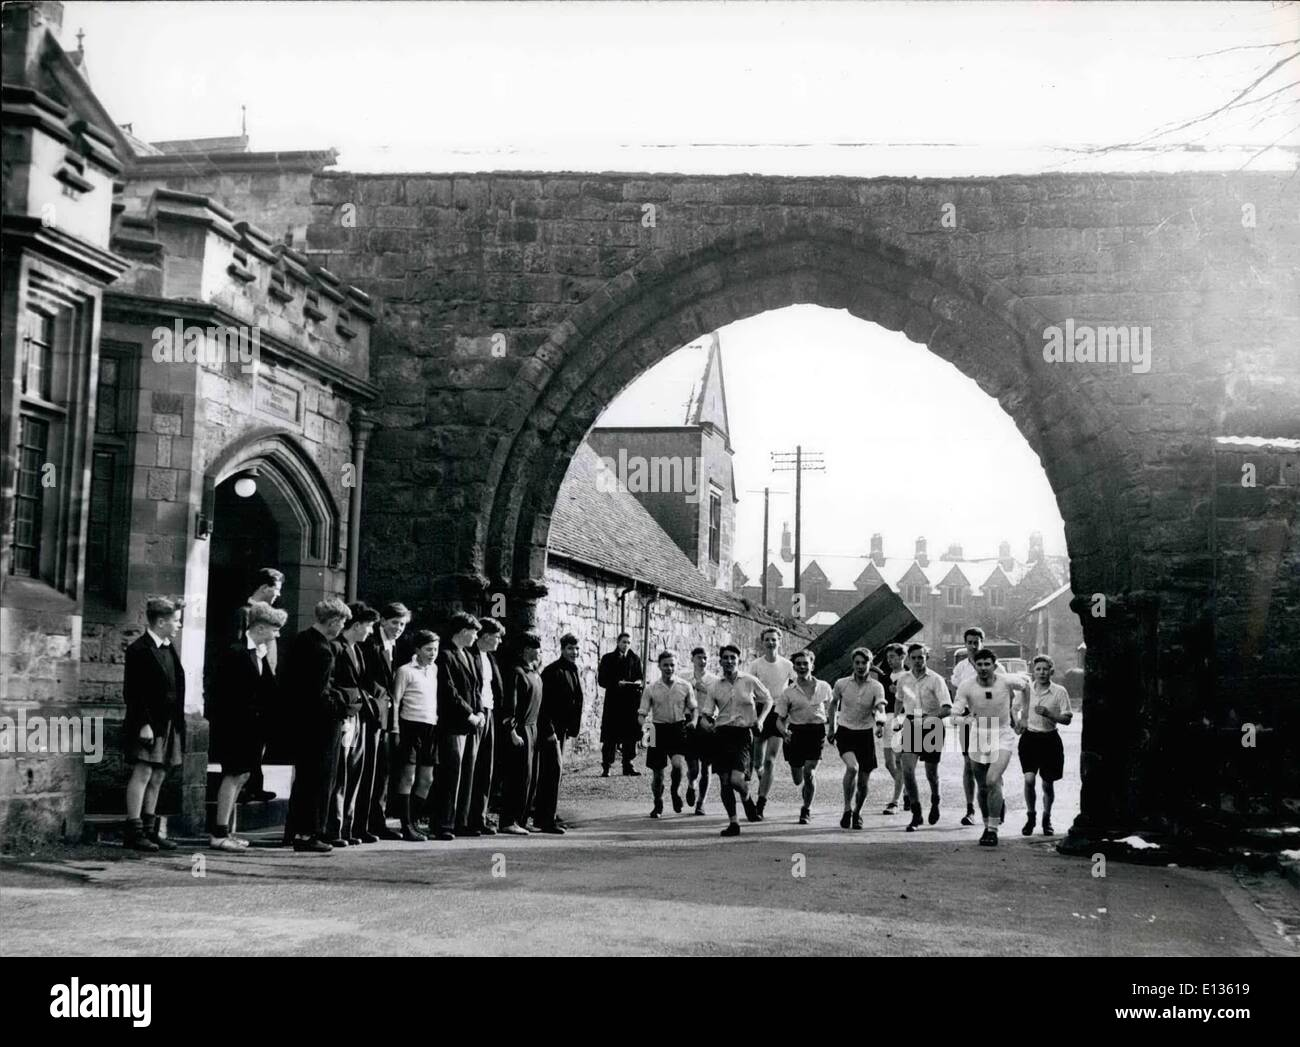 Feb. 28, 2012 - REPTON SCHOOL: A WEEKLY CROSS-COUNTRY RUN STARTS THE FAMOUS ARCH - Stock Image